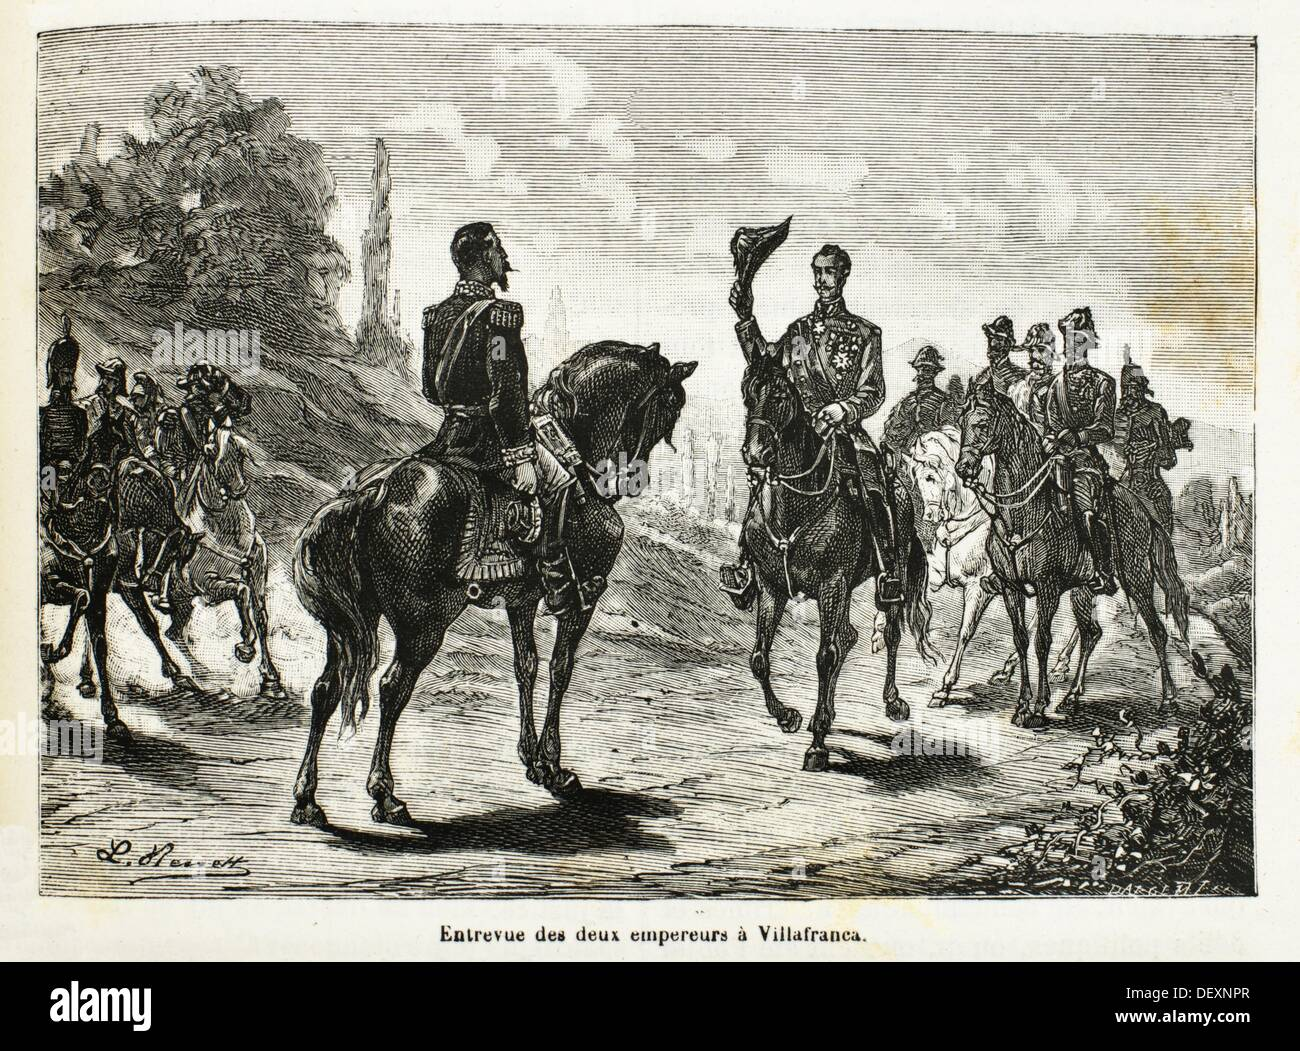 France - History- 19th Century - 1859, The preliminary peace of Villafranca, agreed to between Napoleon III and Franz Joseph on - Stock Image